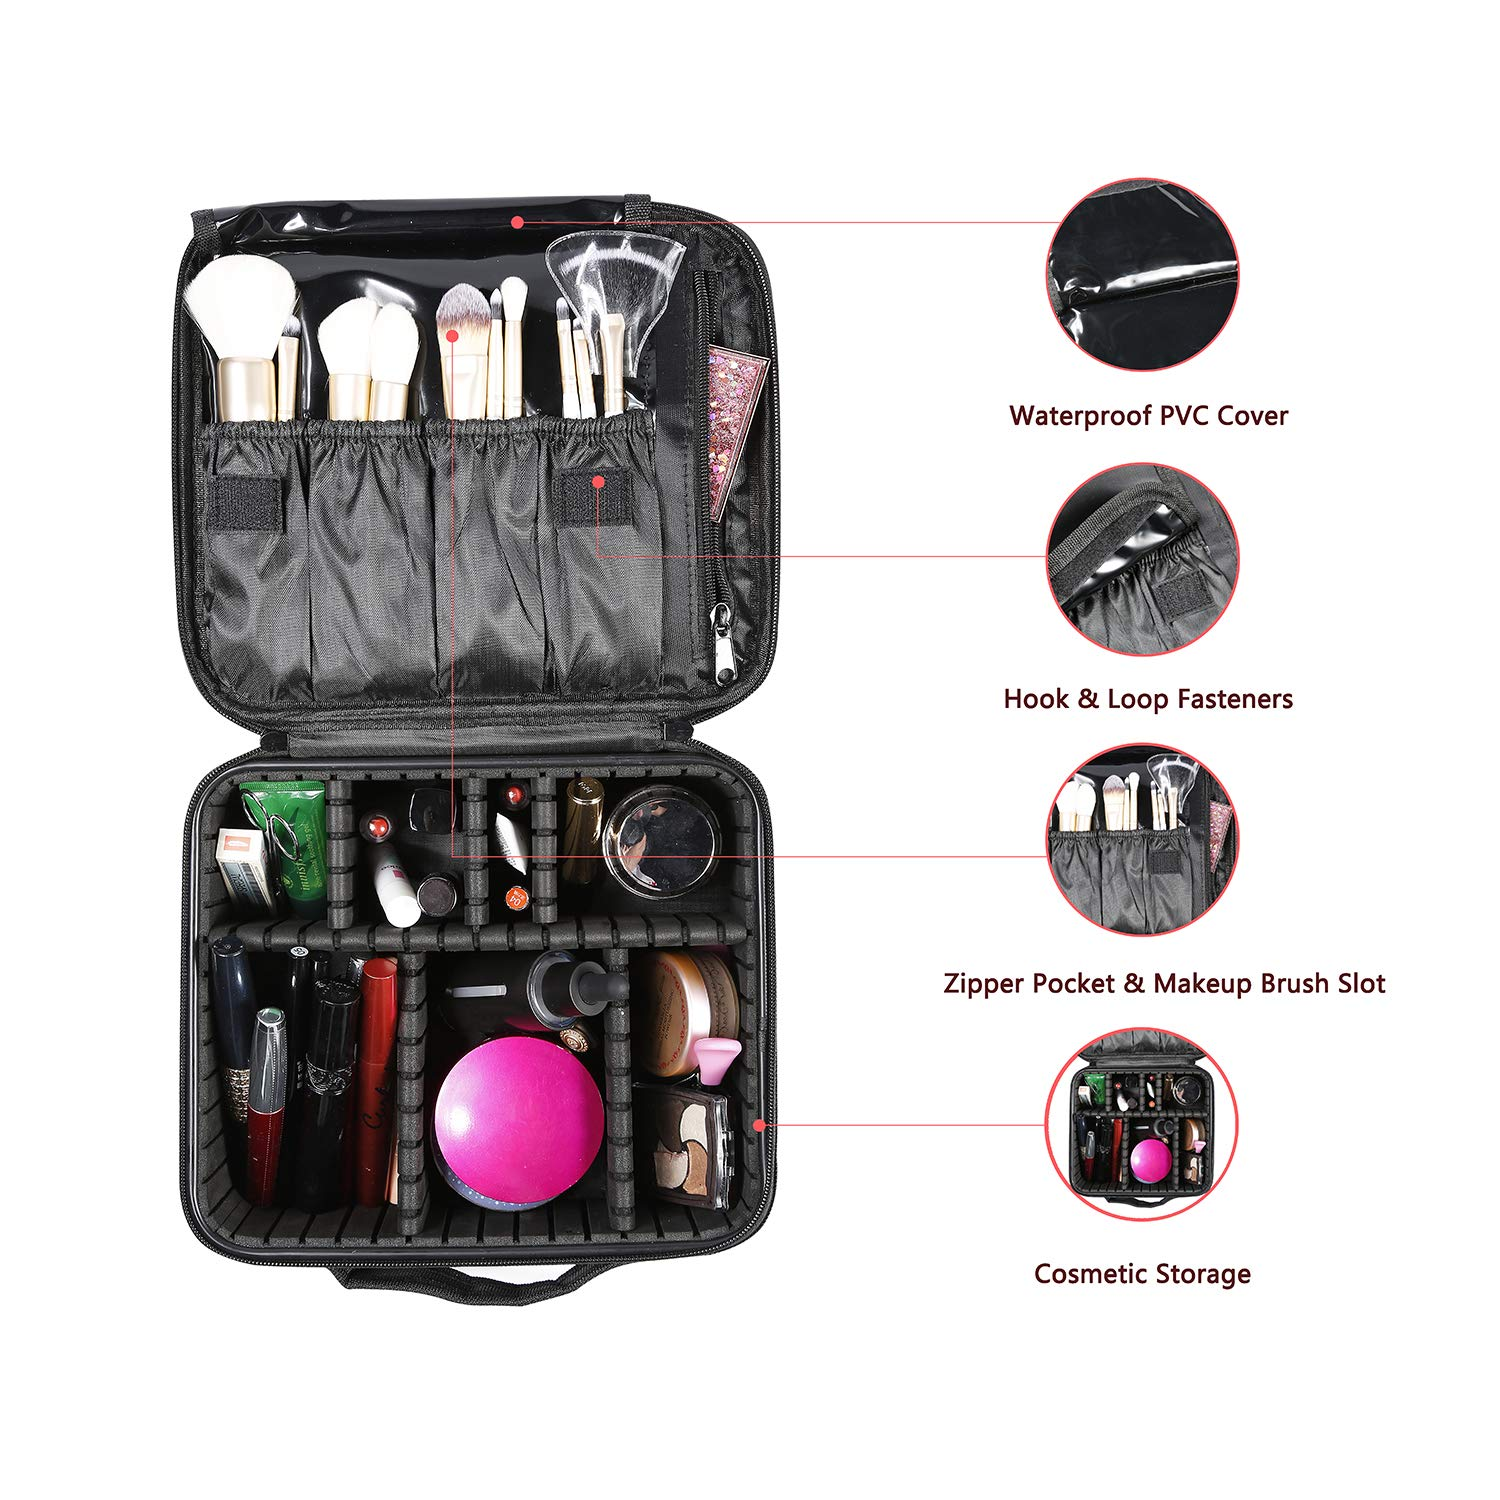 Travel Makeup Case Organizer Travel Cosmetic Train Case Bag Make Up Cases Organizers Storage with DIY Adjustable Divider for Women Cosmetics Makeup Brushes Jewelry